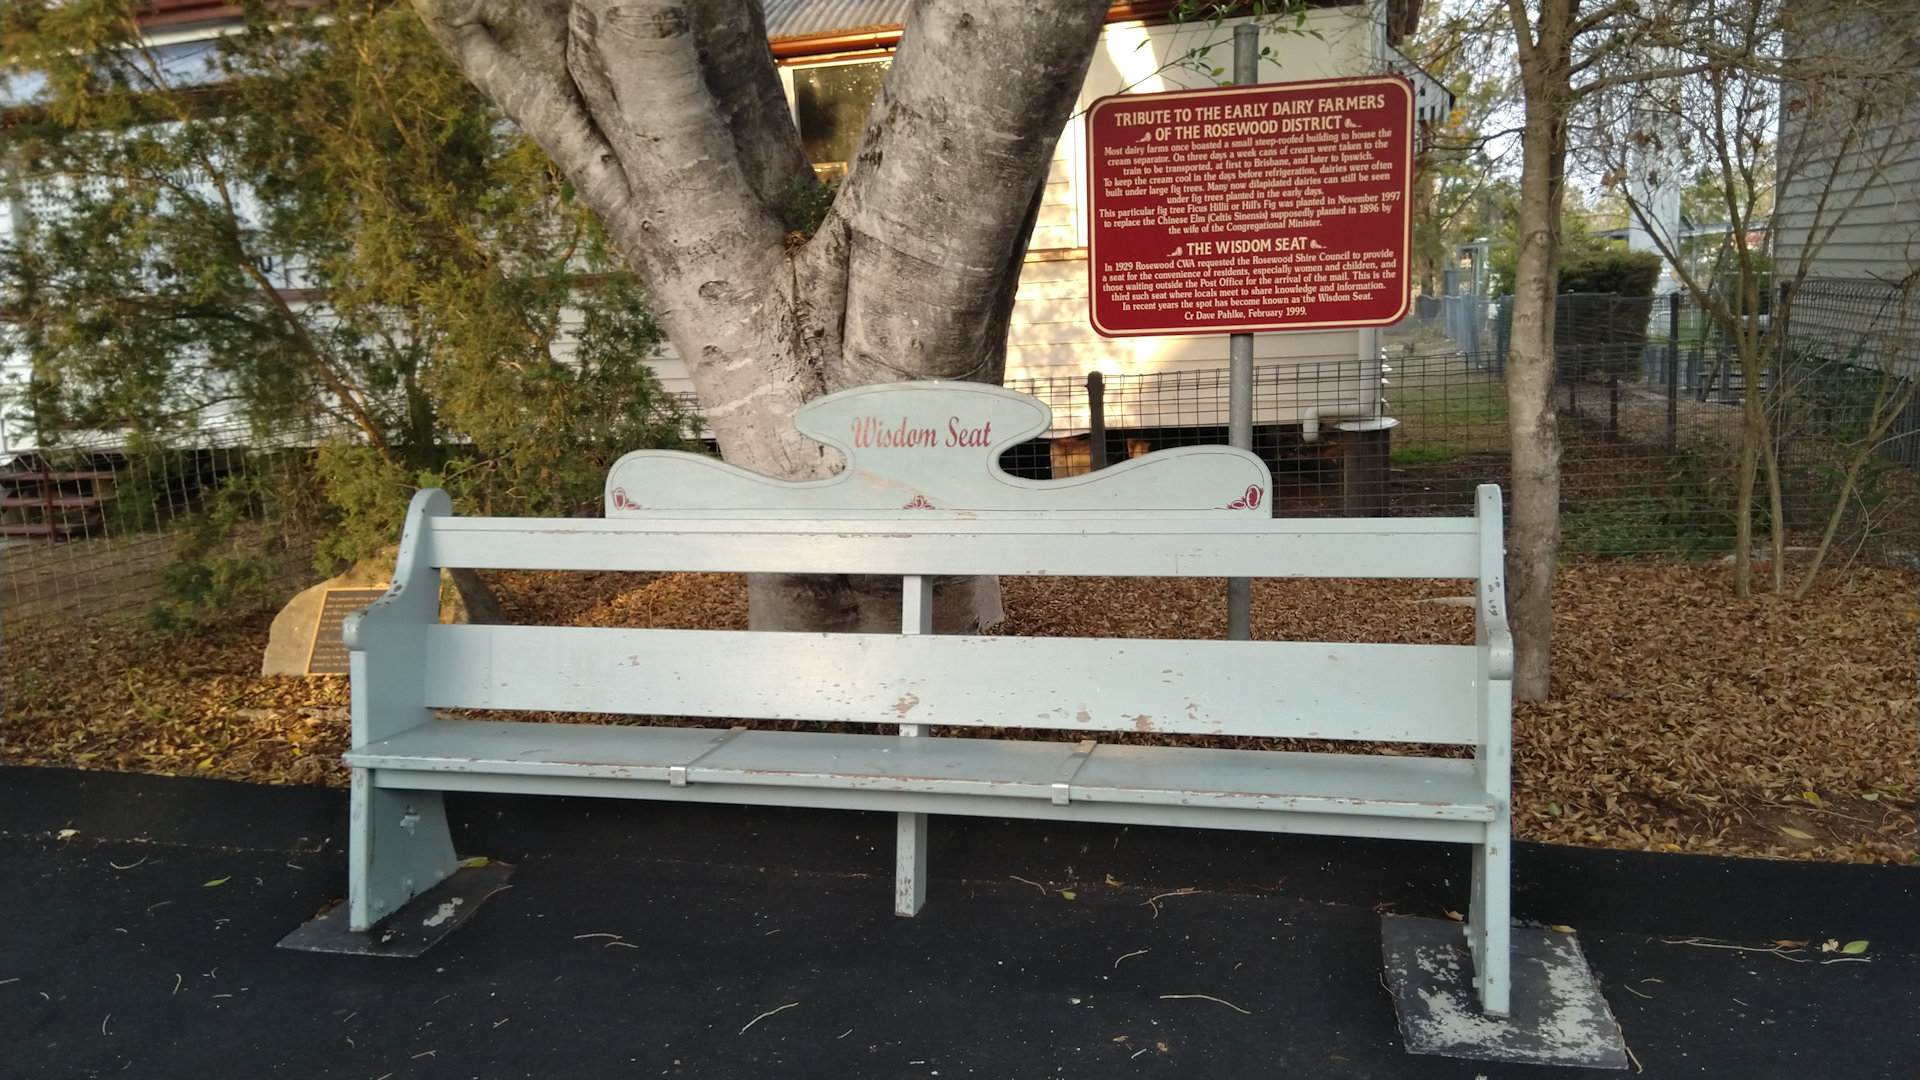 The Wisdom Seat in the main street of Rosewood